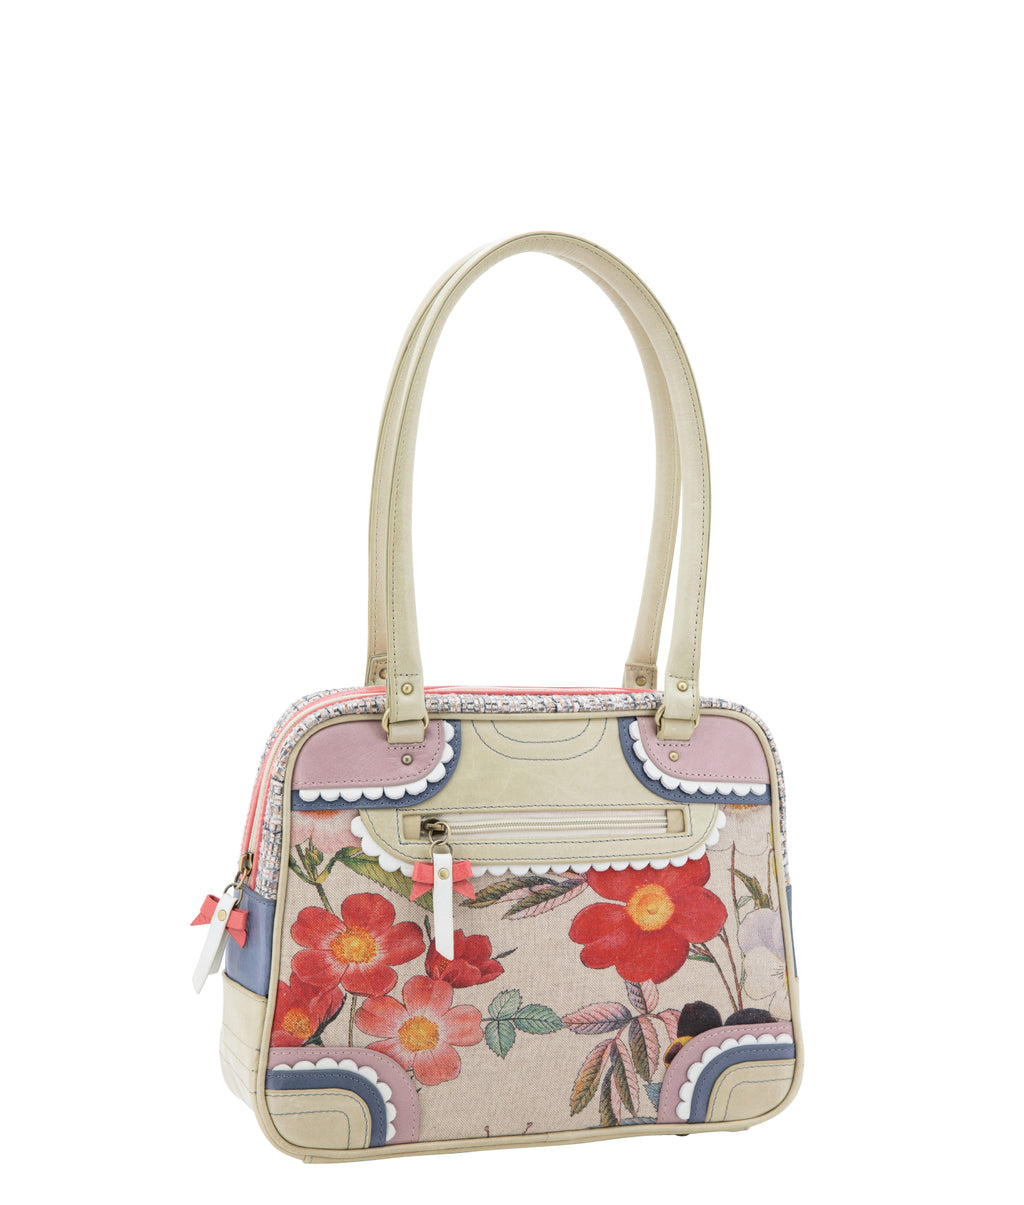 NINA Shoulder Bag - Fly Me North